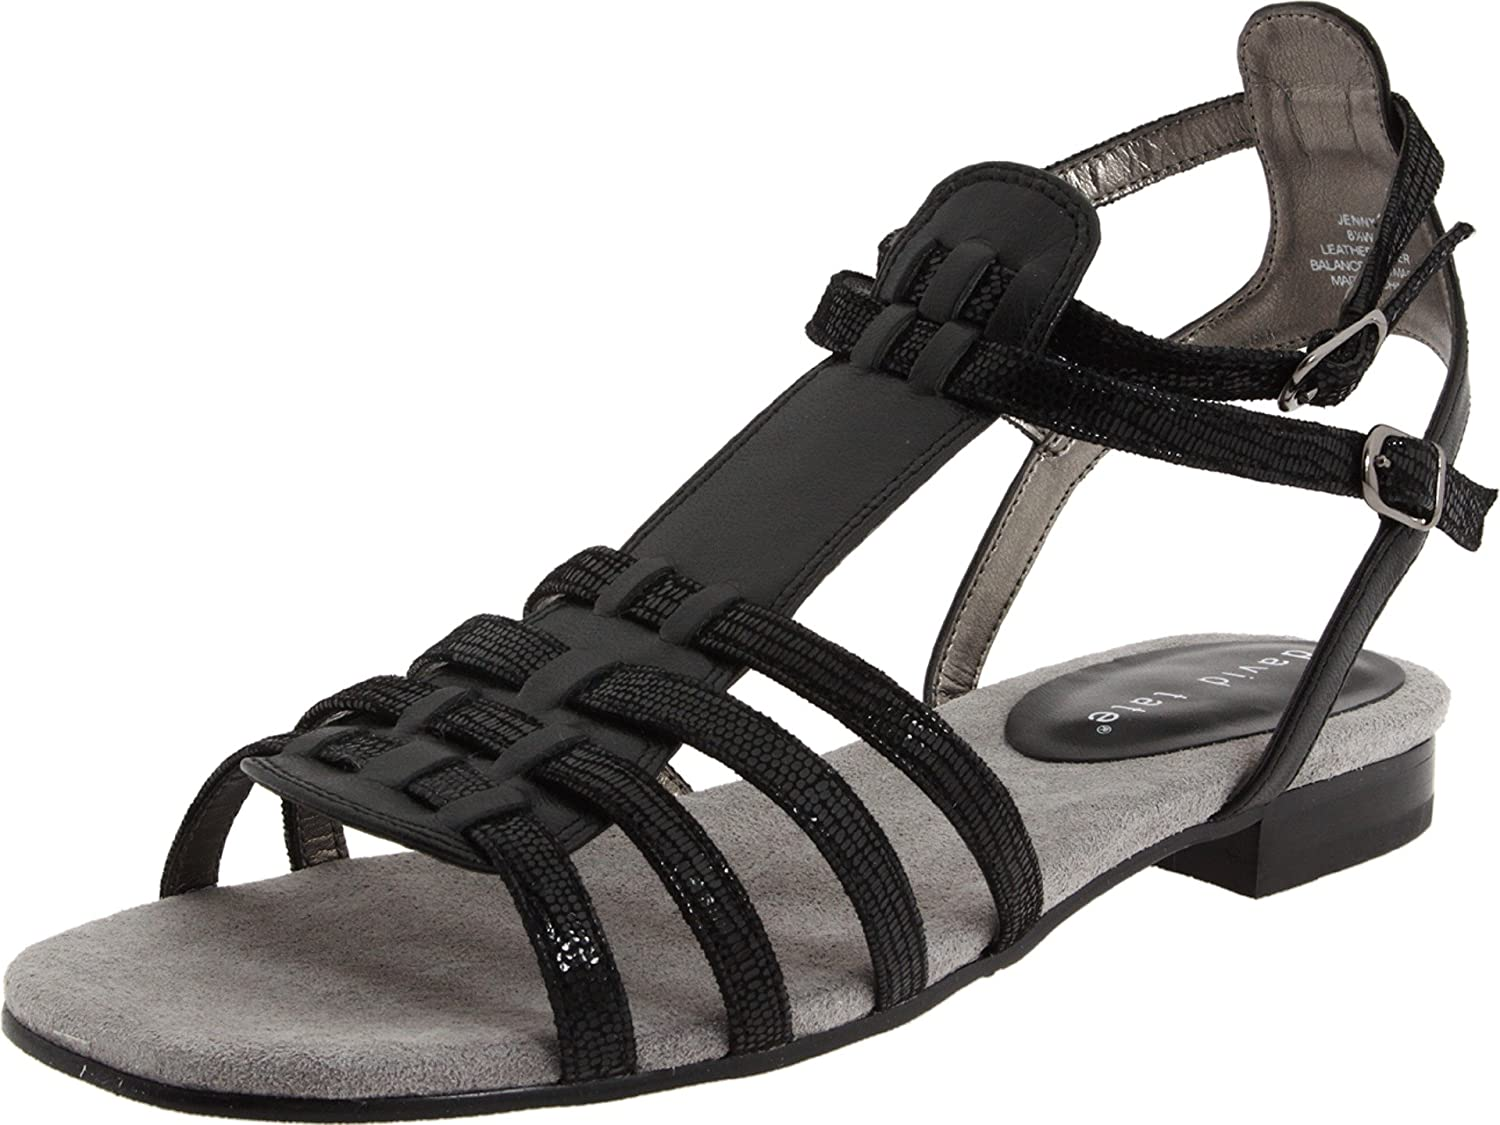 David Tate Women's Jenny Flat B0042DCD74 10.5 XW US|Black Kid